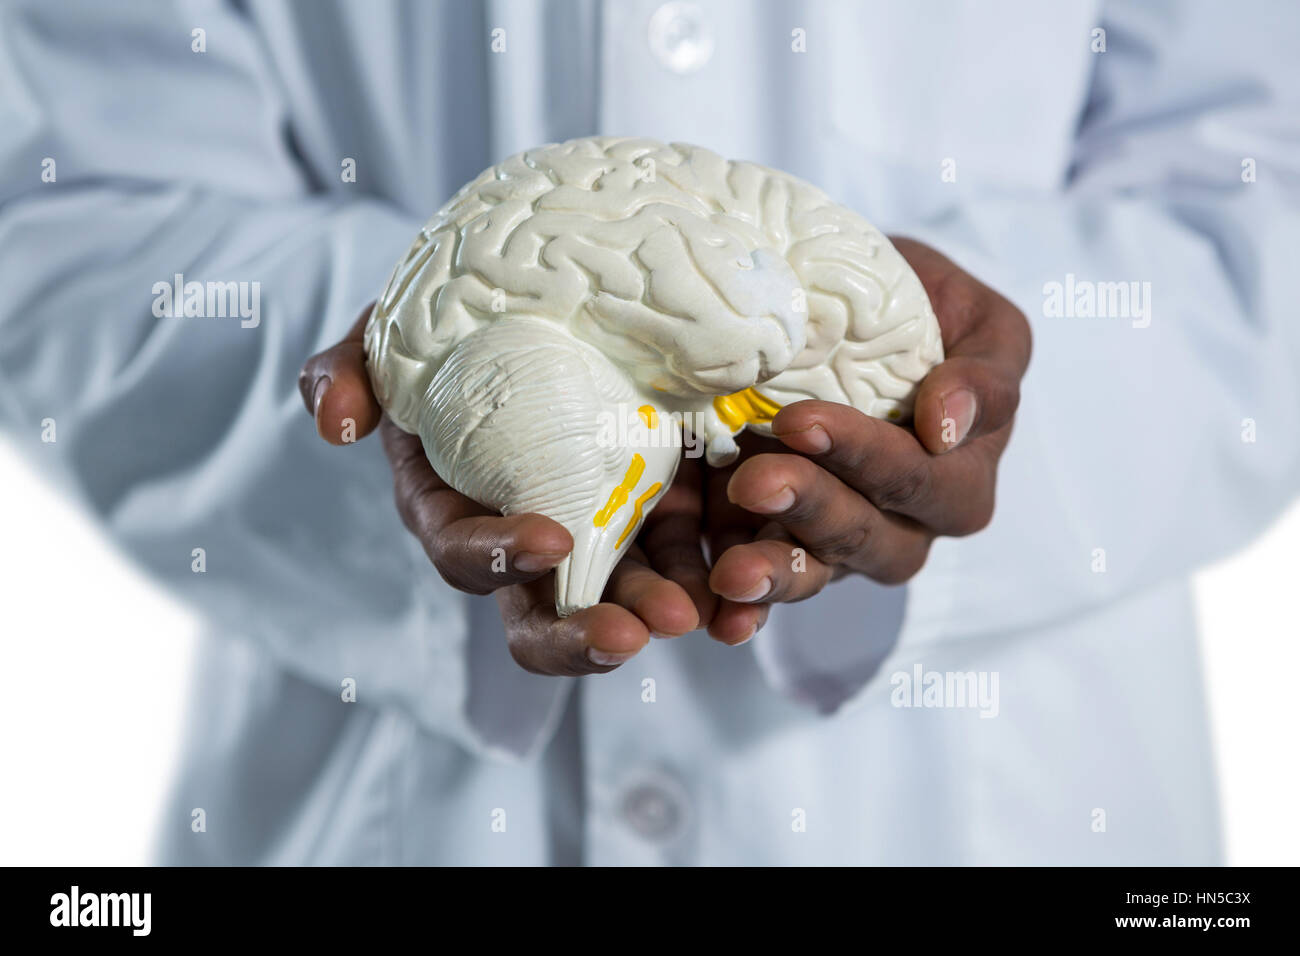 Mid section of doctor holding anatomy brain - Stock Image